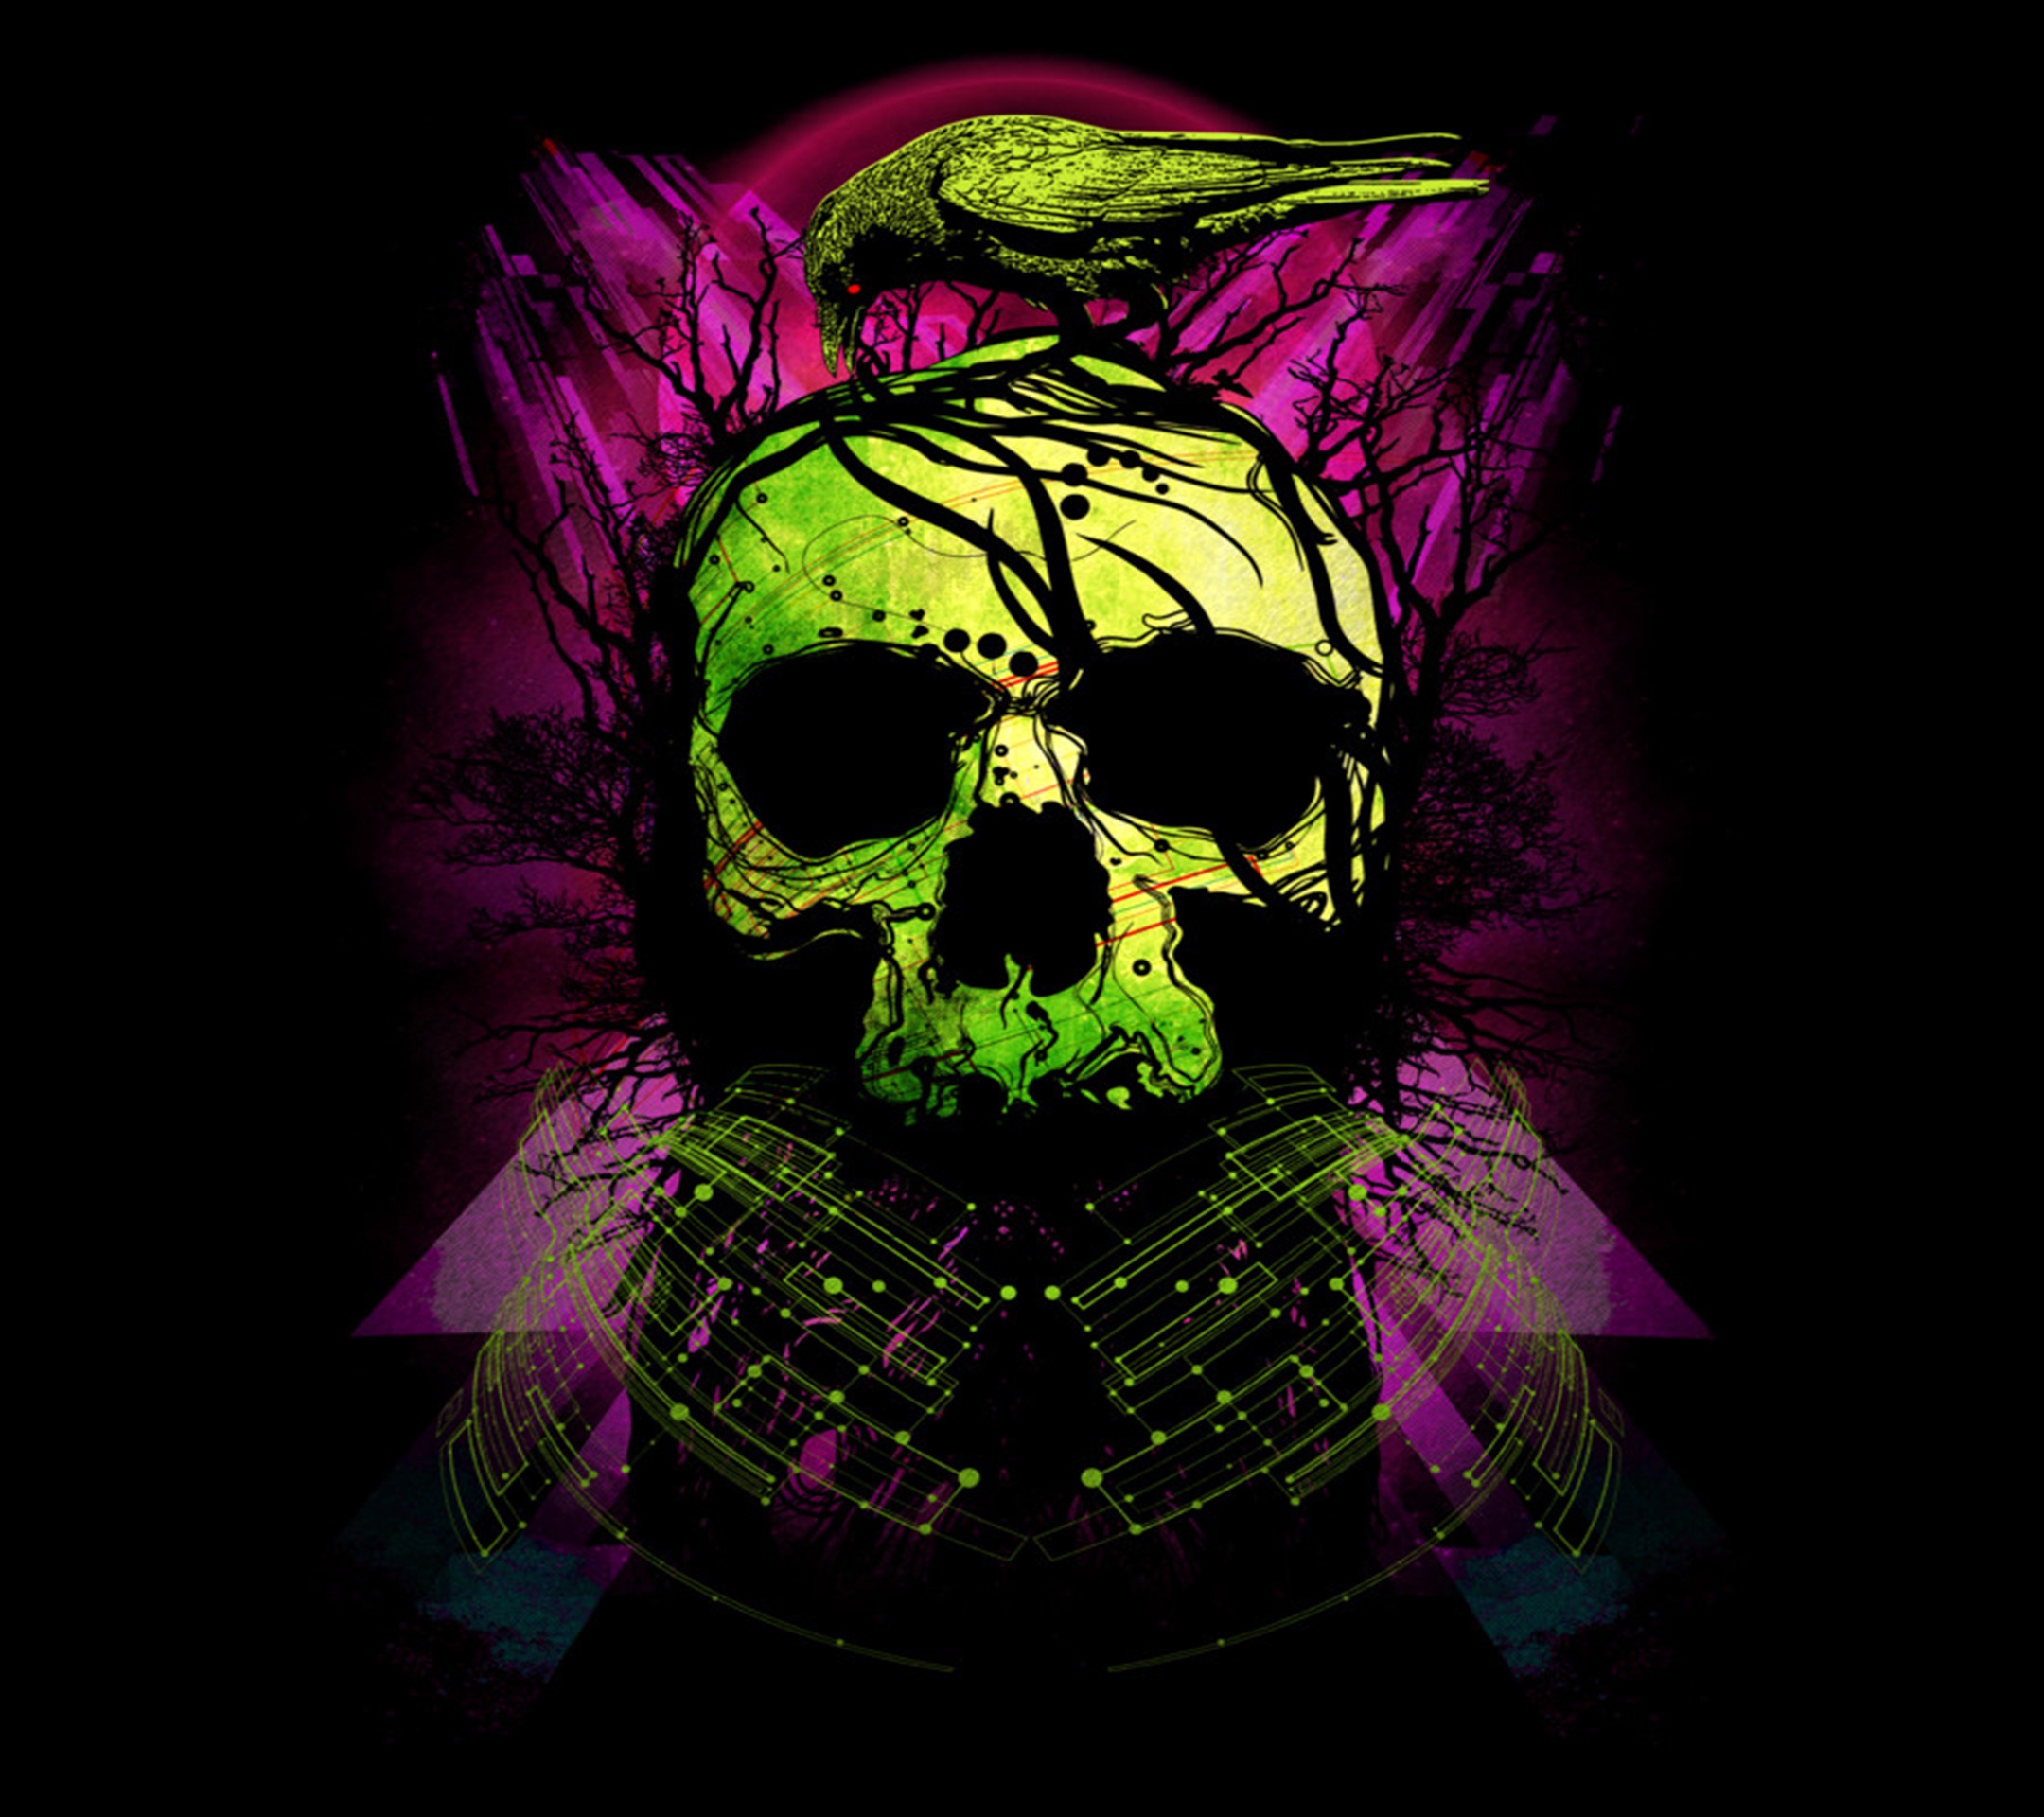 2160x1920 Skull HD Wallpaper | Background Image |  | ID:503640 - Wallpaper  Abyss